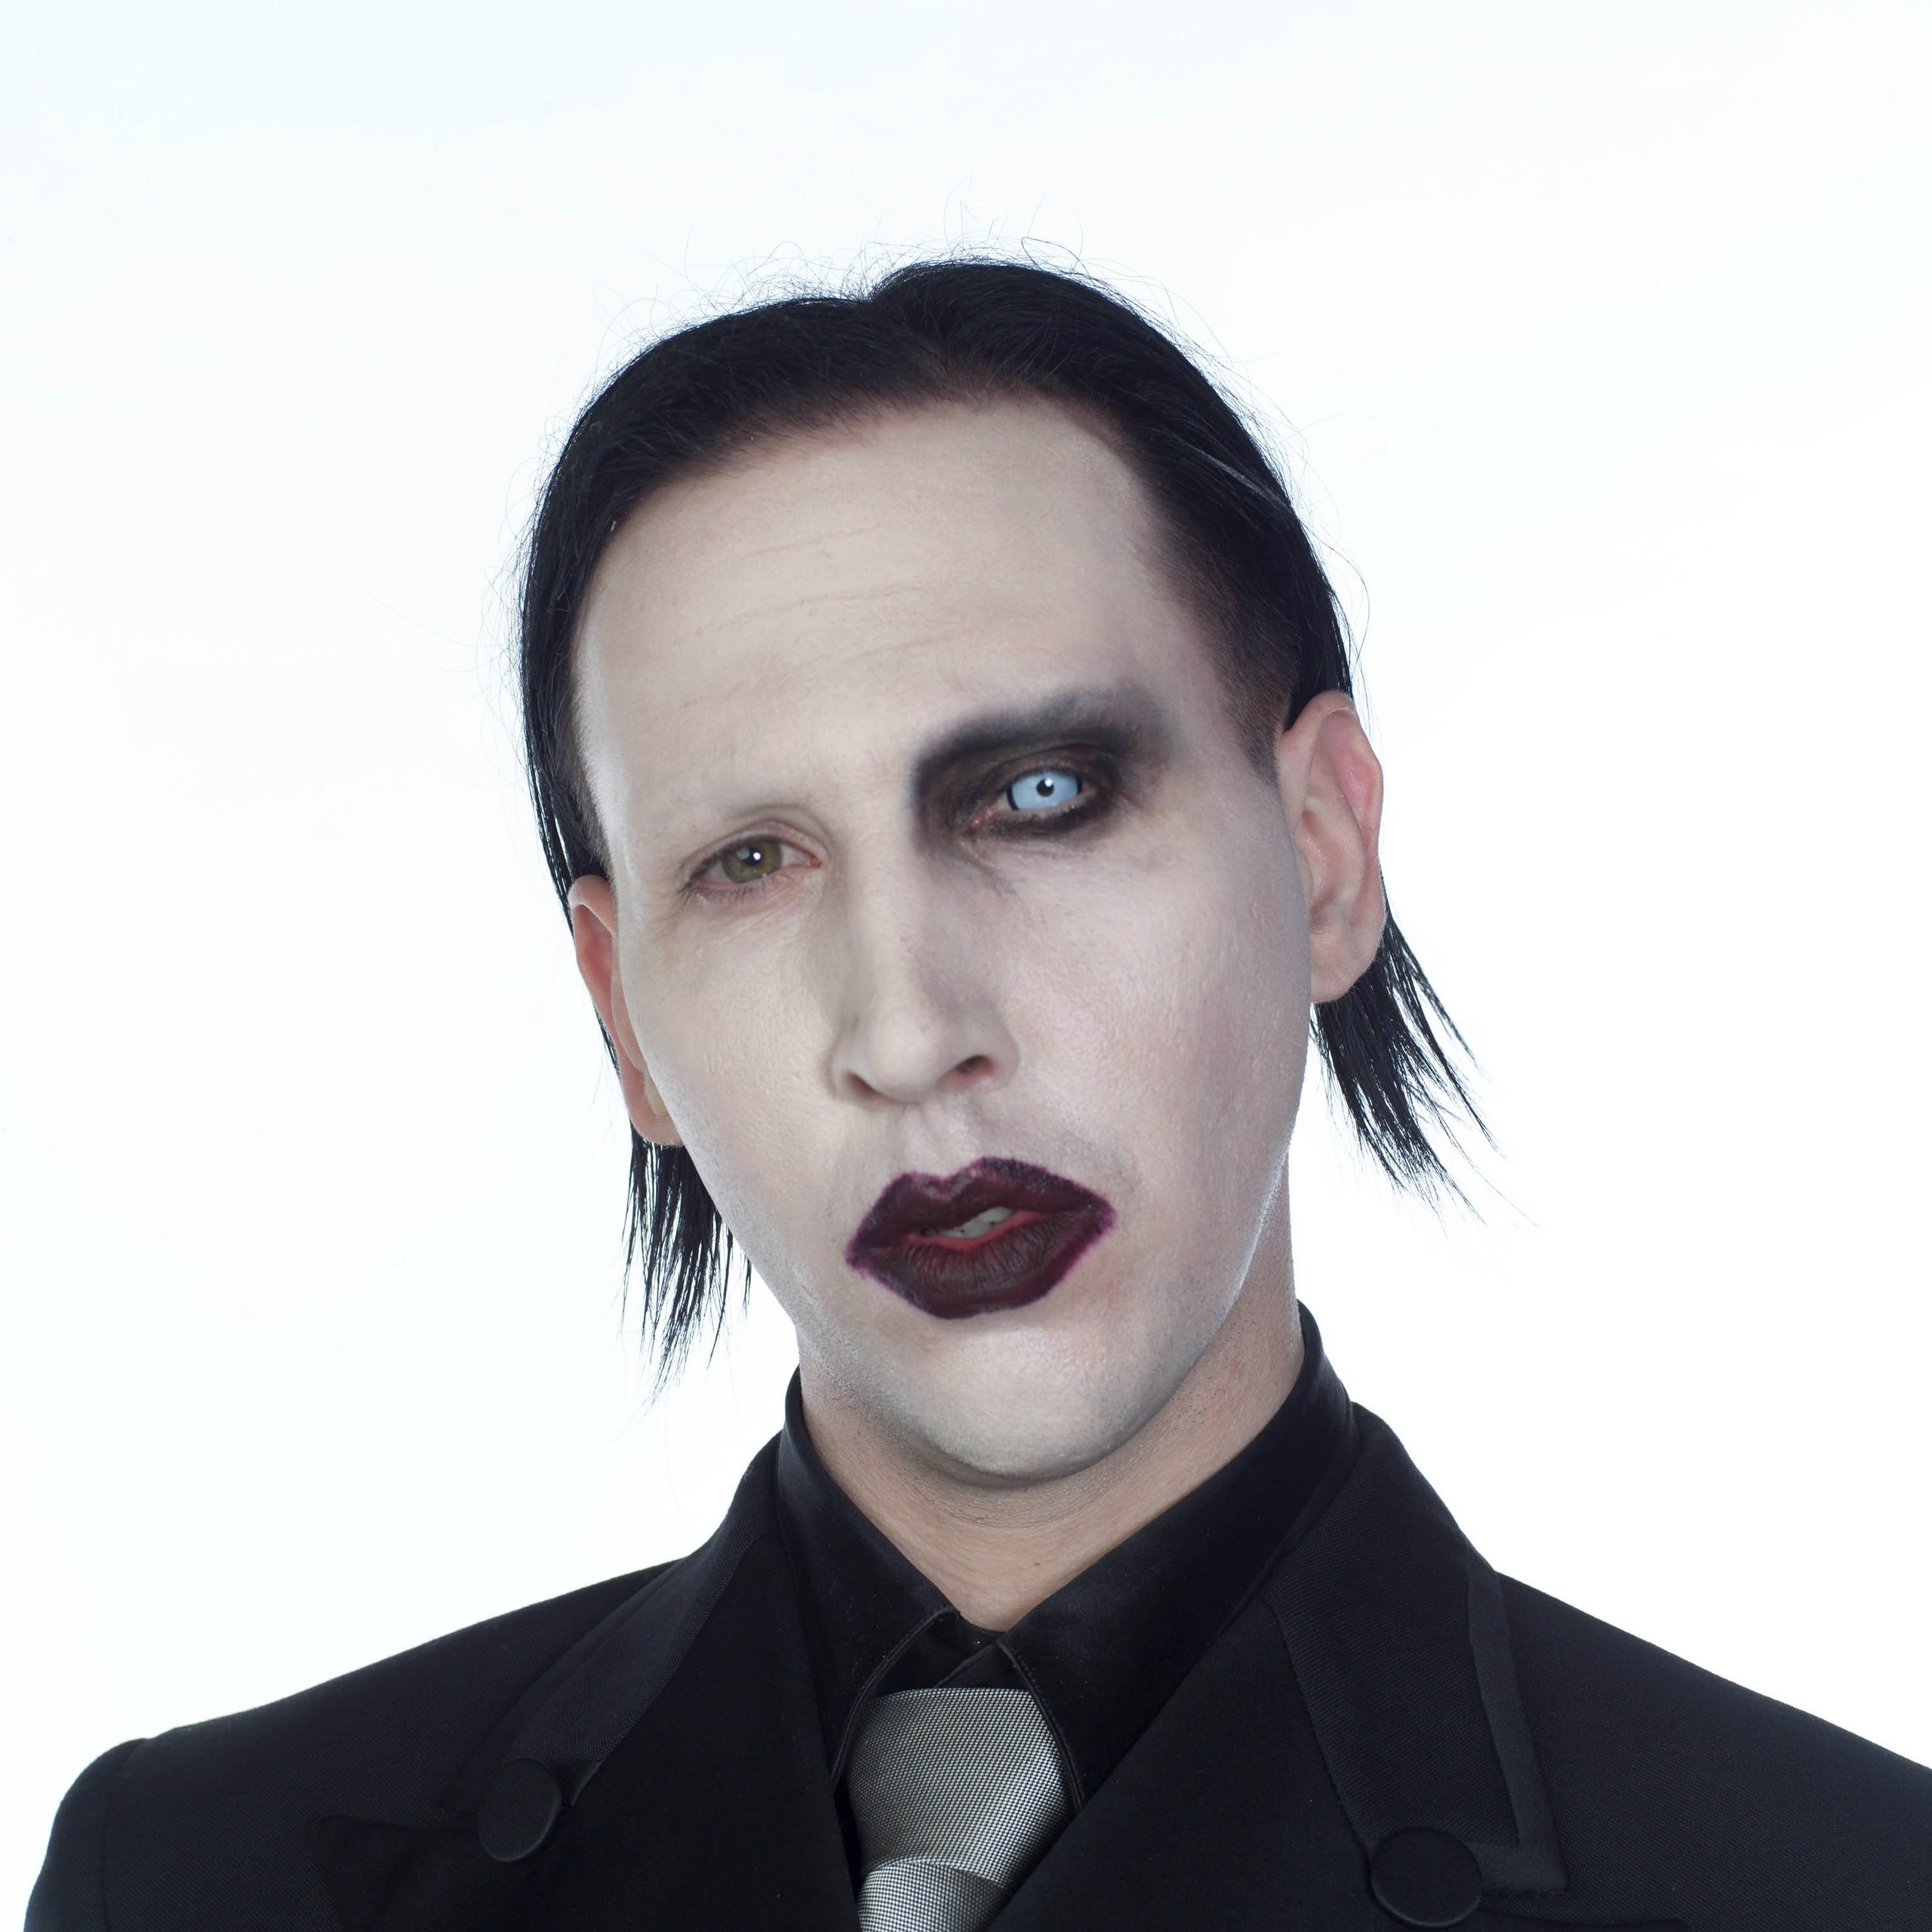 Marilyn Manson & The Spooky Kids - From The Vaults